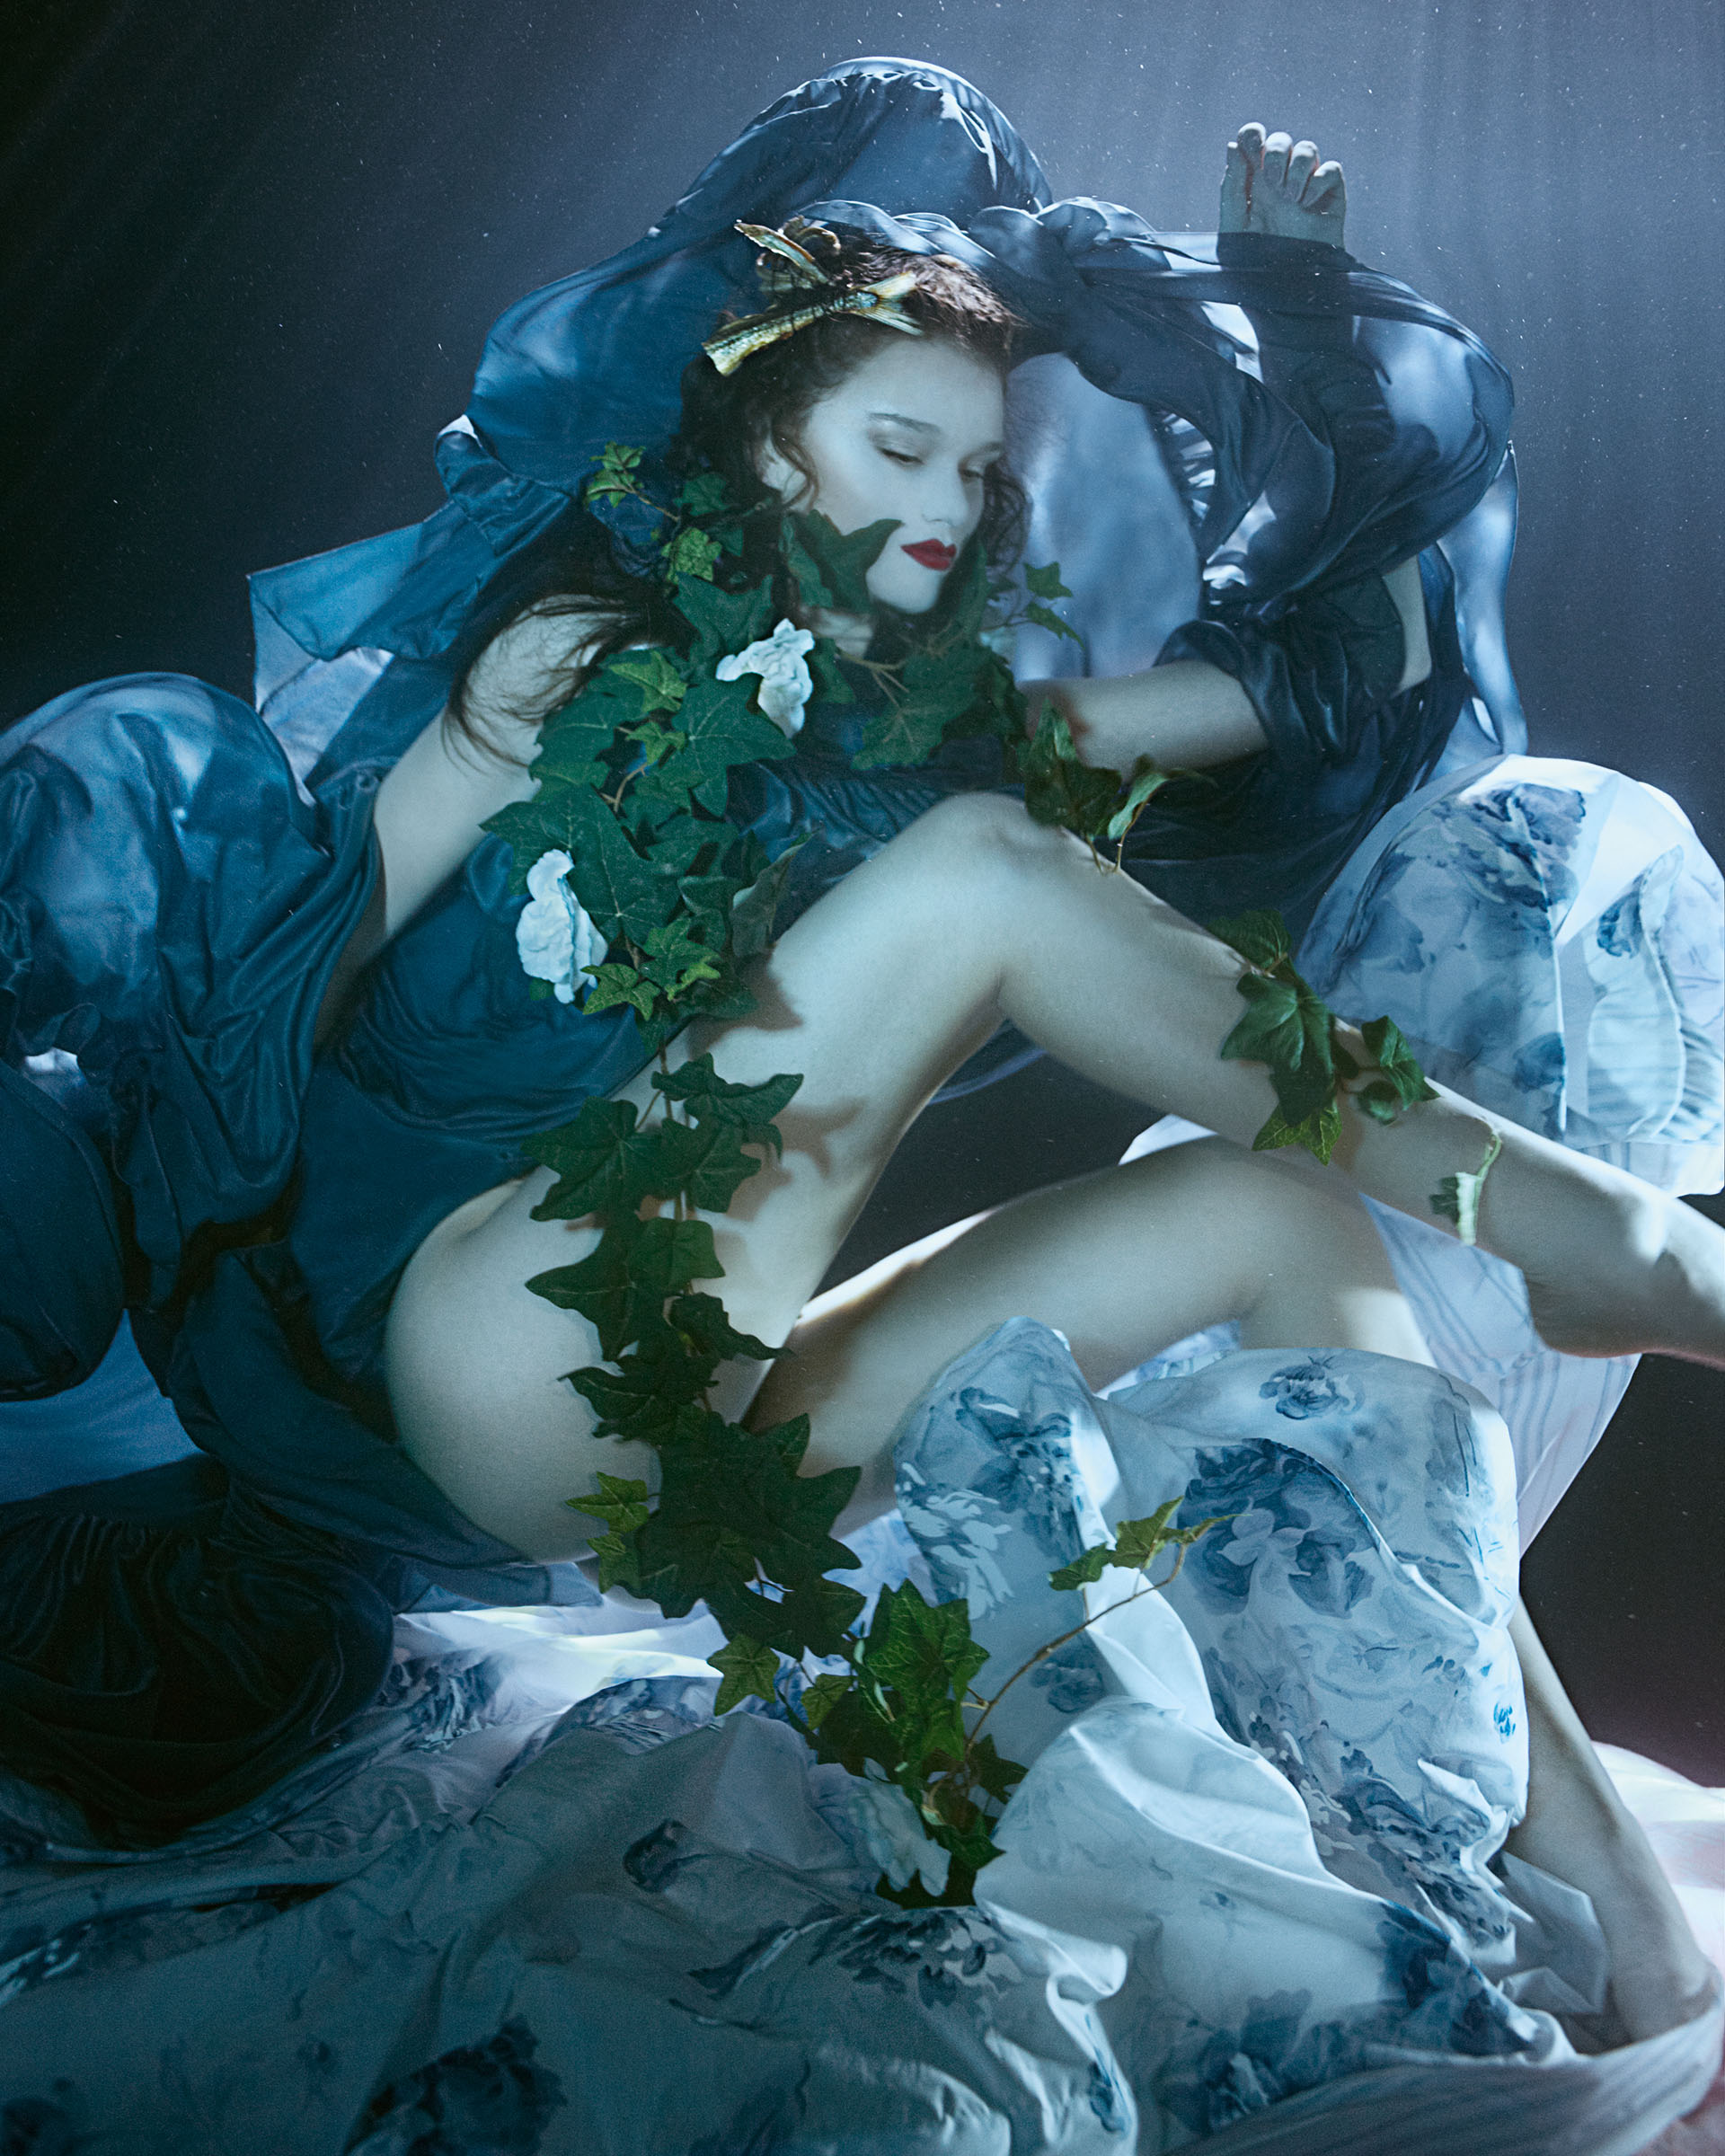 lydia-beesley-franziska-klein-by-zena-holloway-for-how-to-spend-it-may-2014-2